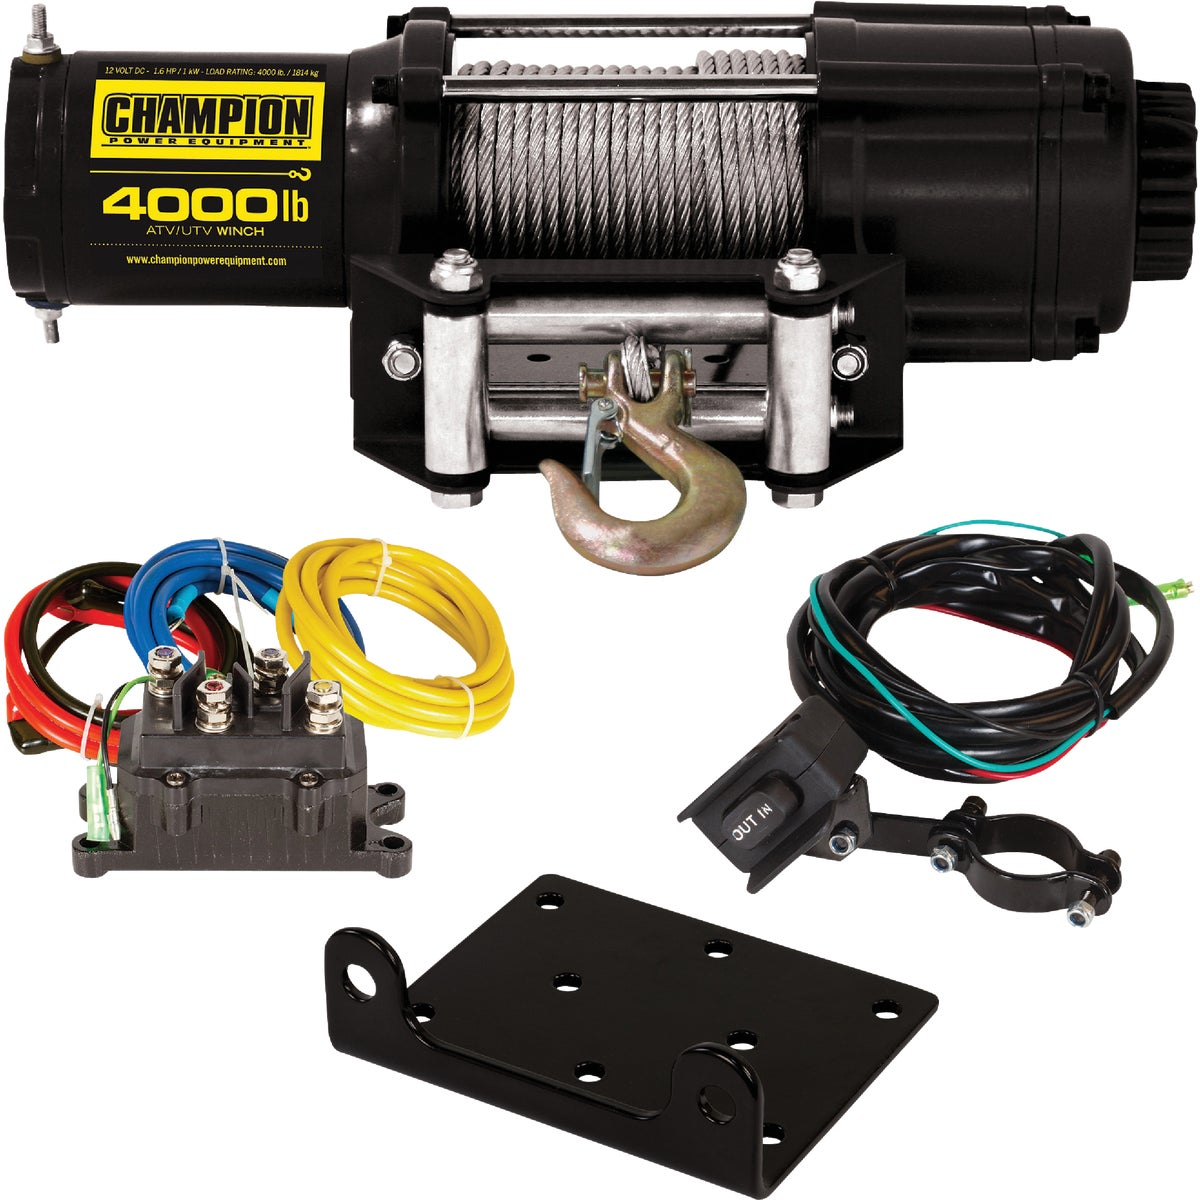 12V DC 3700LB WINCH - 93700 by Warn Industries